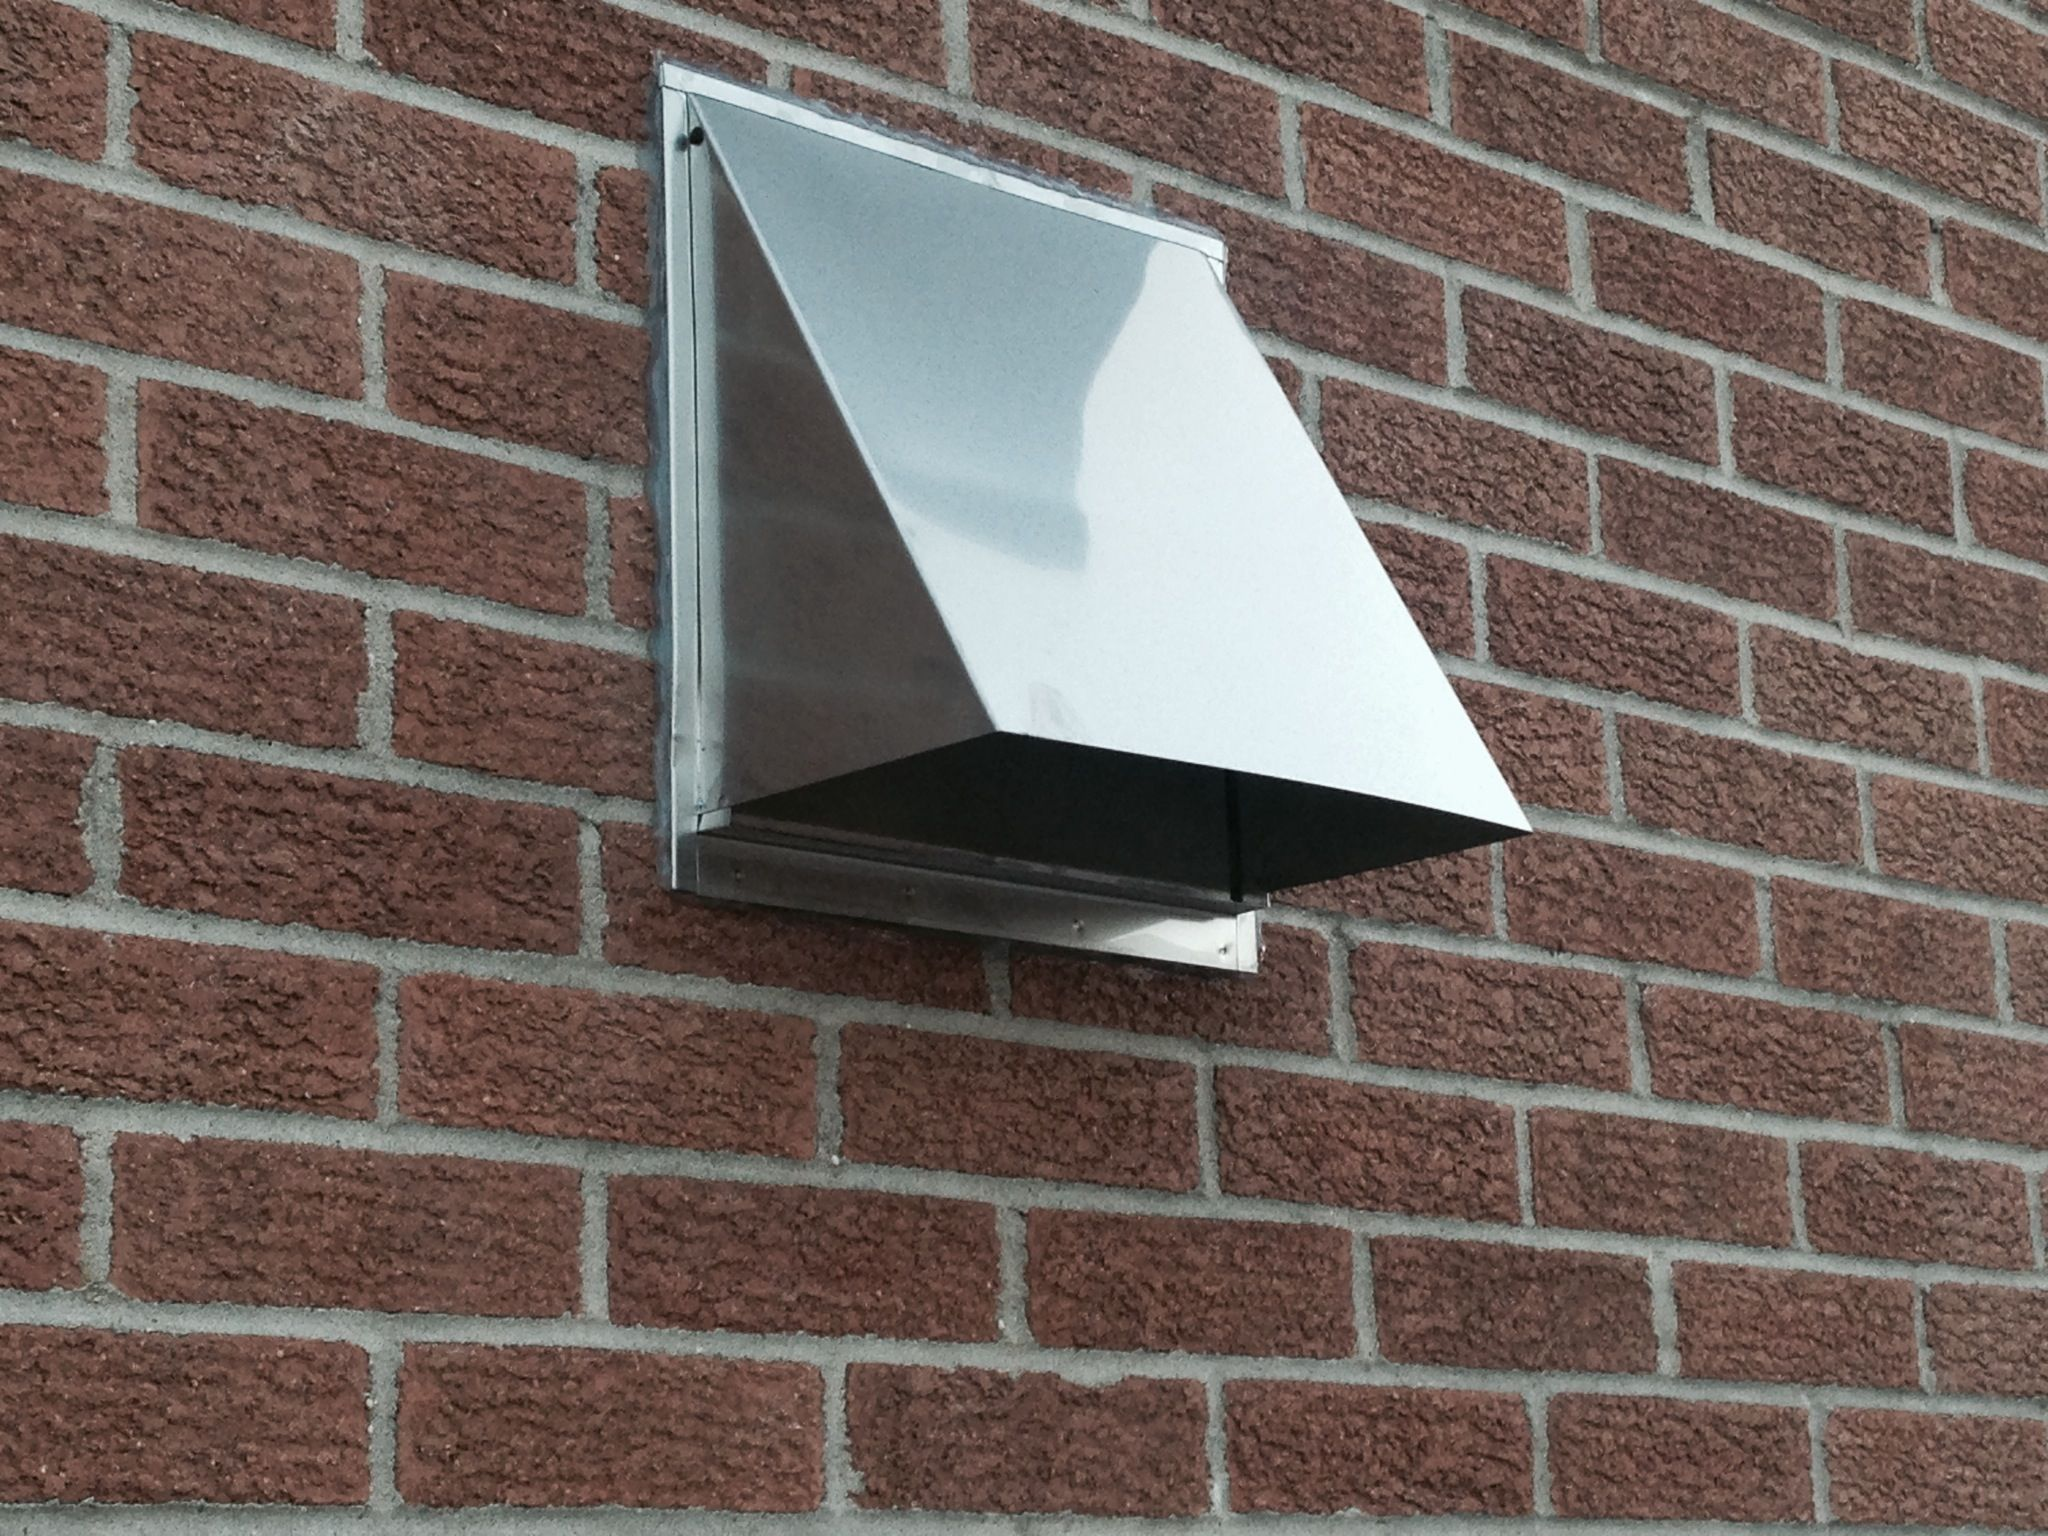 Exterior Wall Vent Covers Kitchen Exhaust Wall Vent Covers Exhaust Fan Kitchen